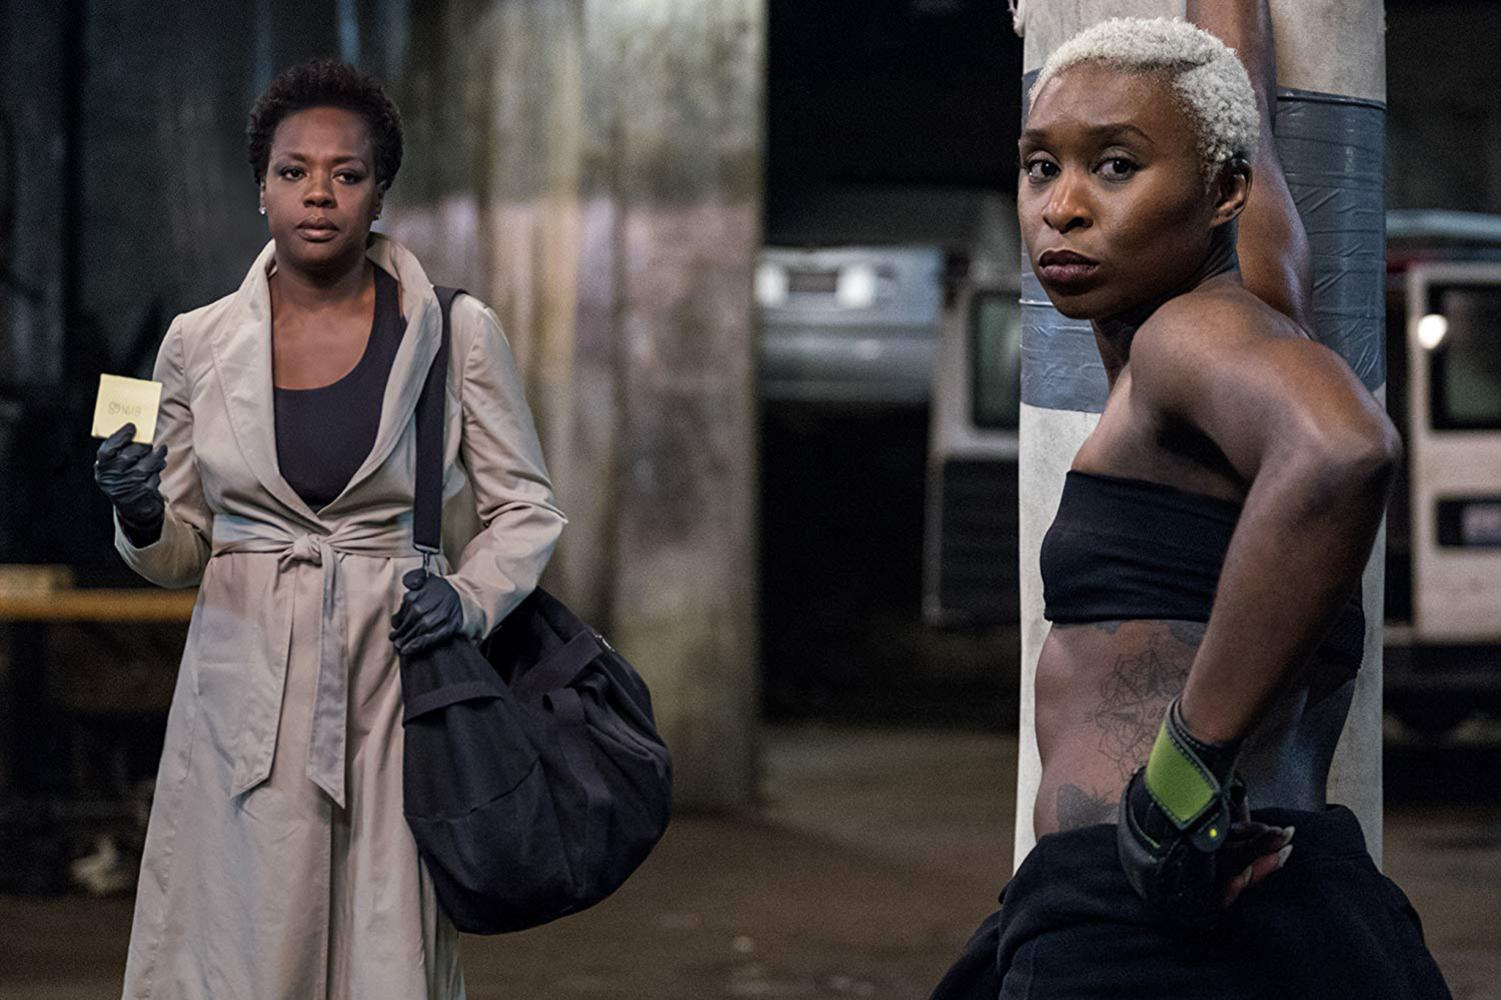 One of the widows, Veronica (Davis), summoning Belle (Cynthia Erivo) for help to carry out the plan.